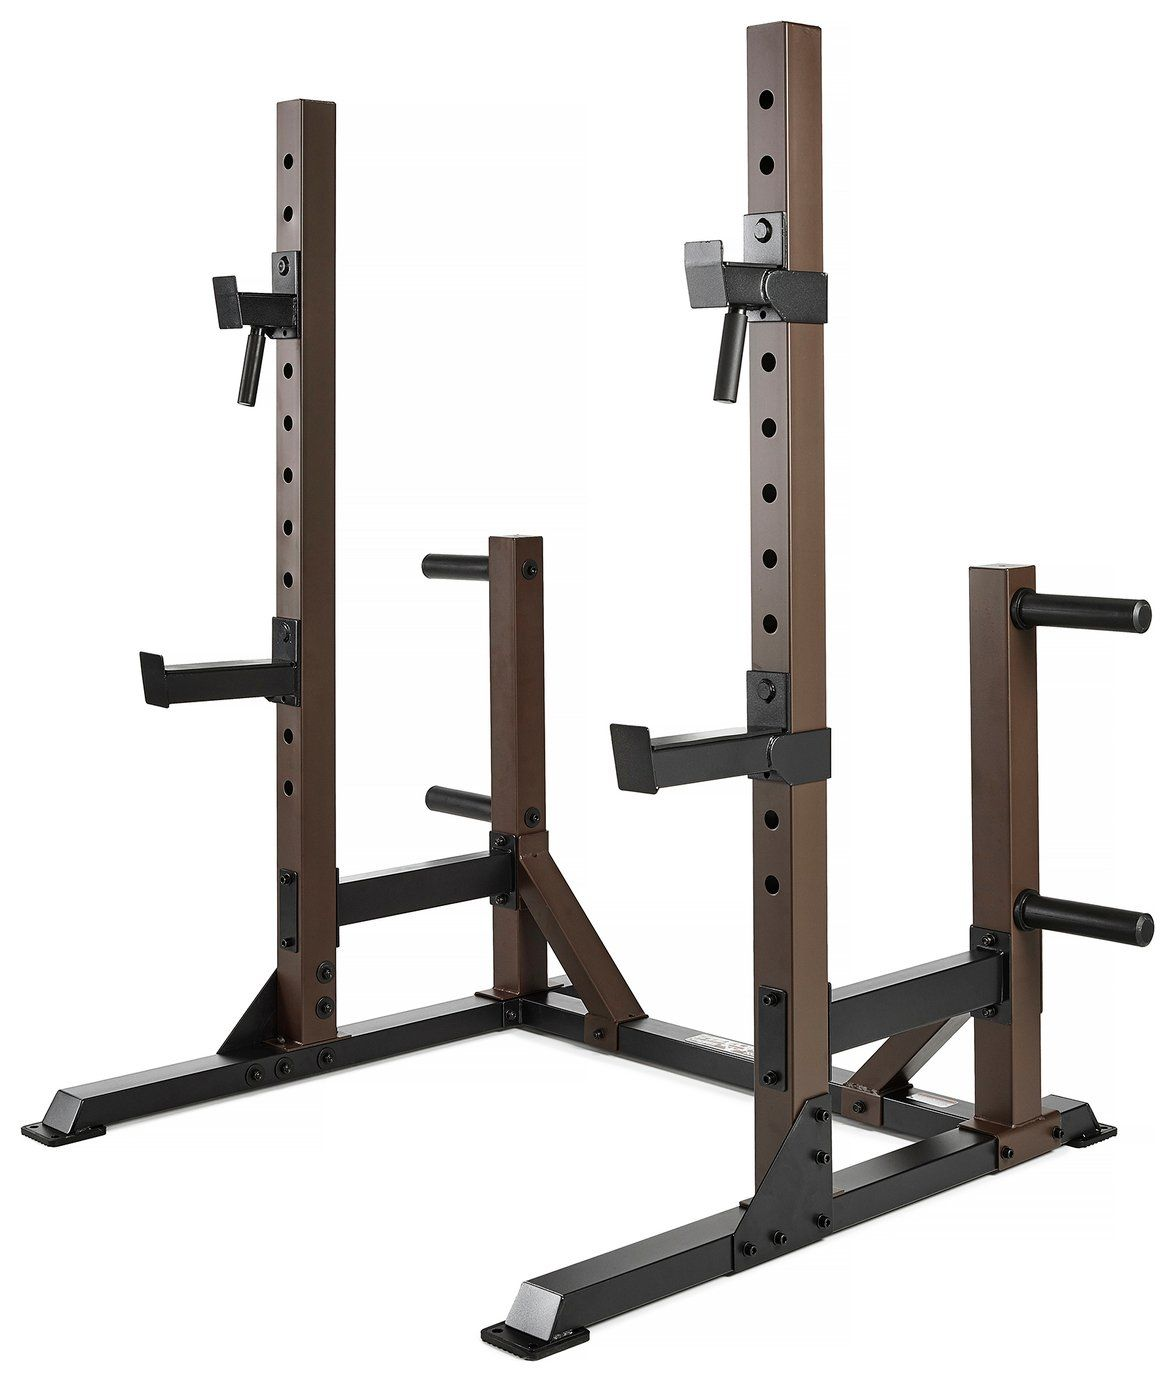 Steelbody By Marcy Squat Rack Base Trainer In 2020 Squat Rack Barbell Workout Squats